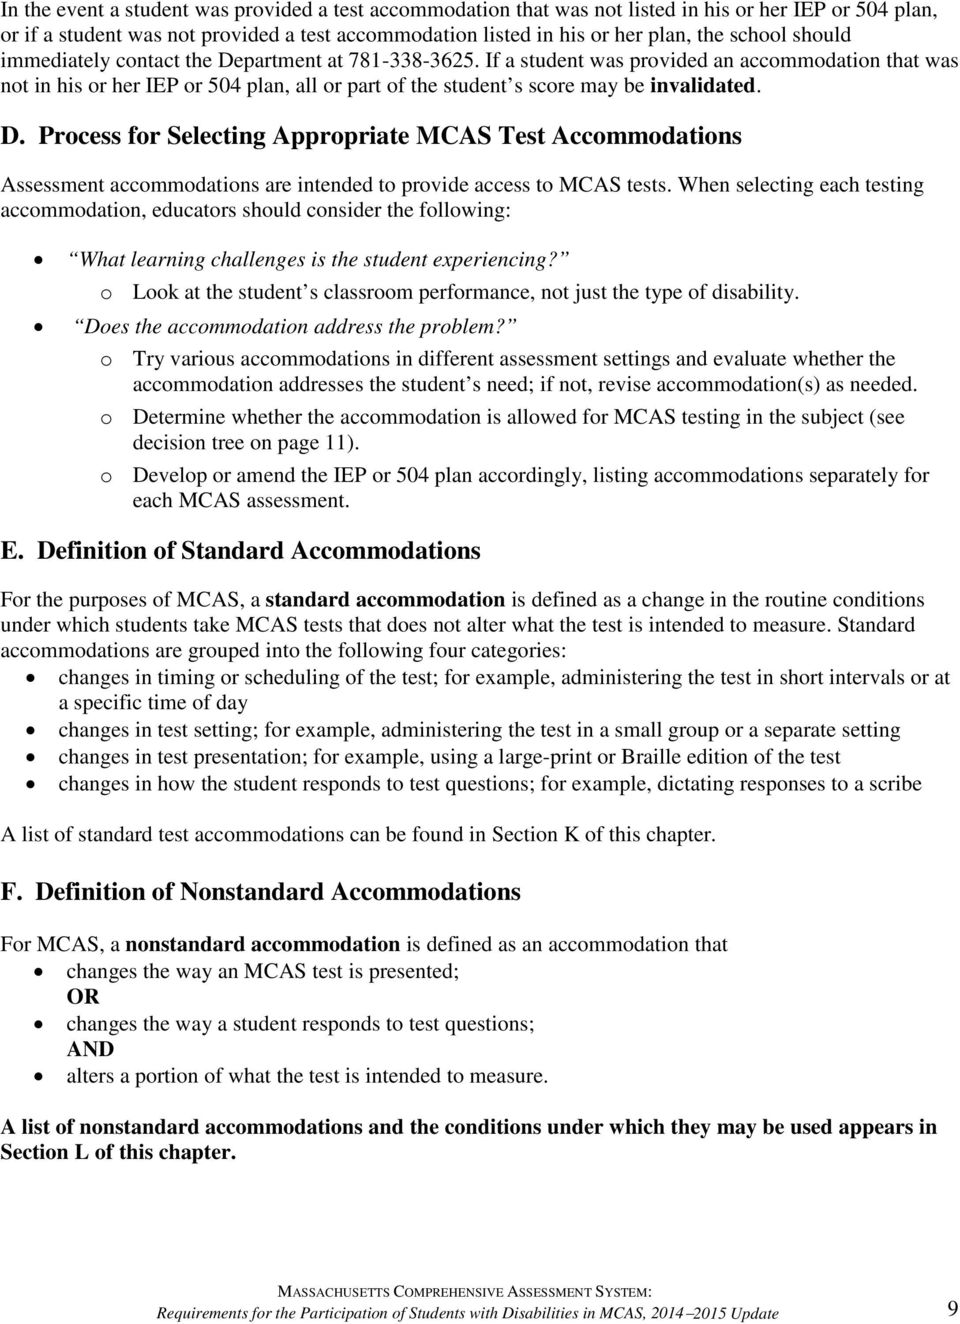 D. Process for Selecting Appropriate MCAS Test Accommodations Assessment accommodations are intended to provide access to MCAS tests.